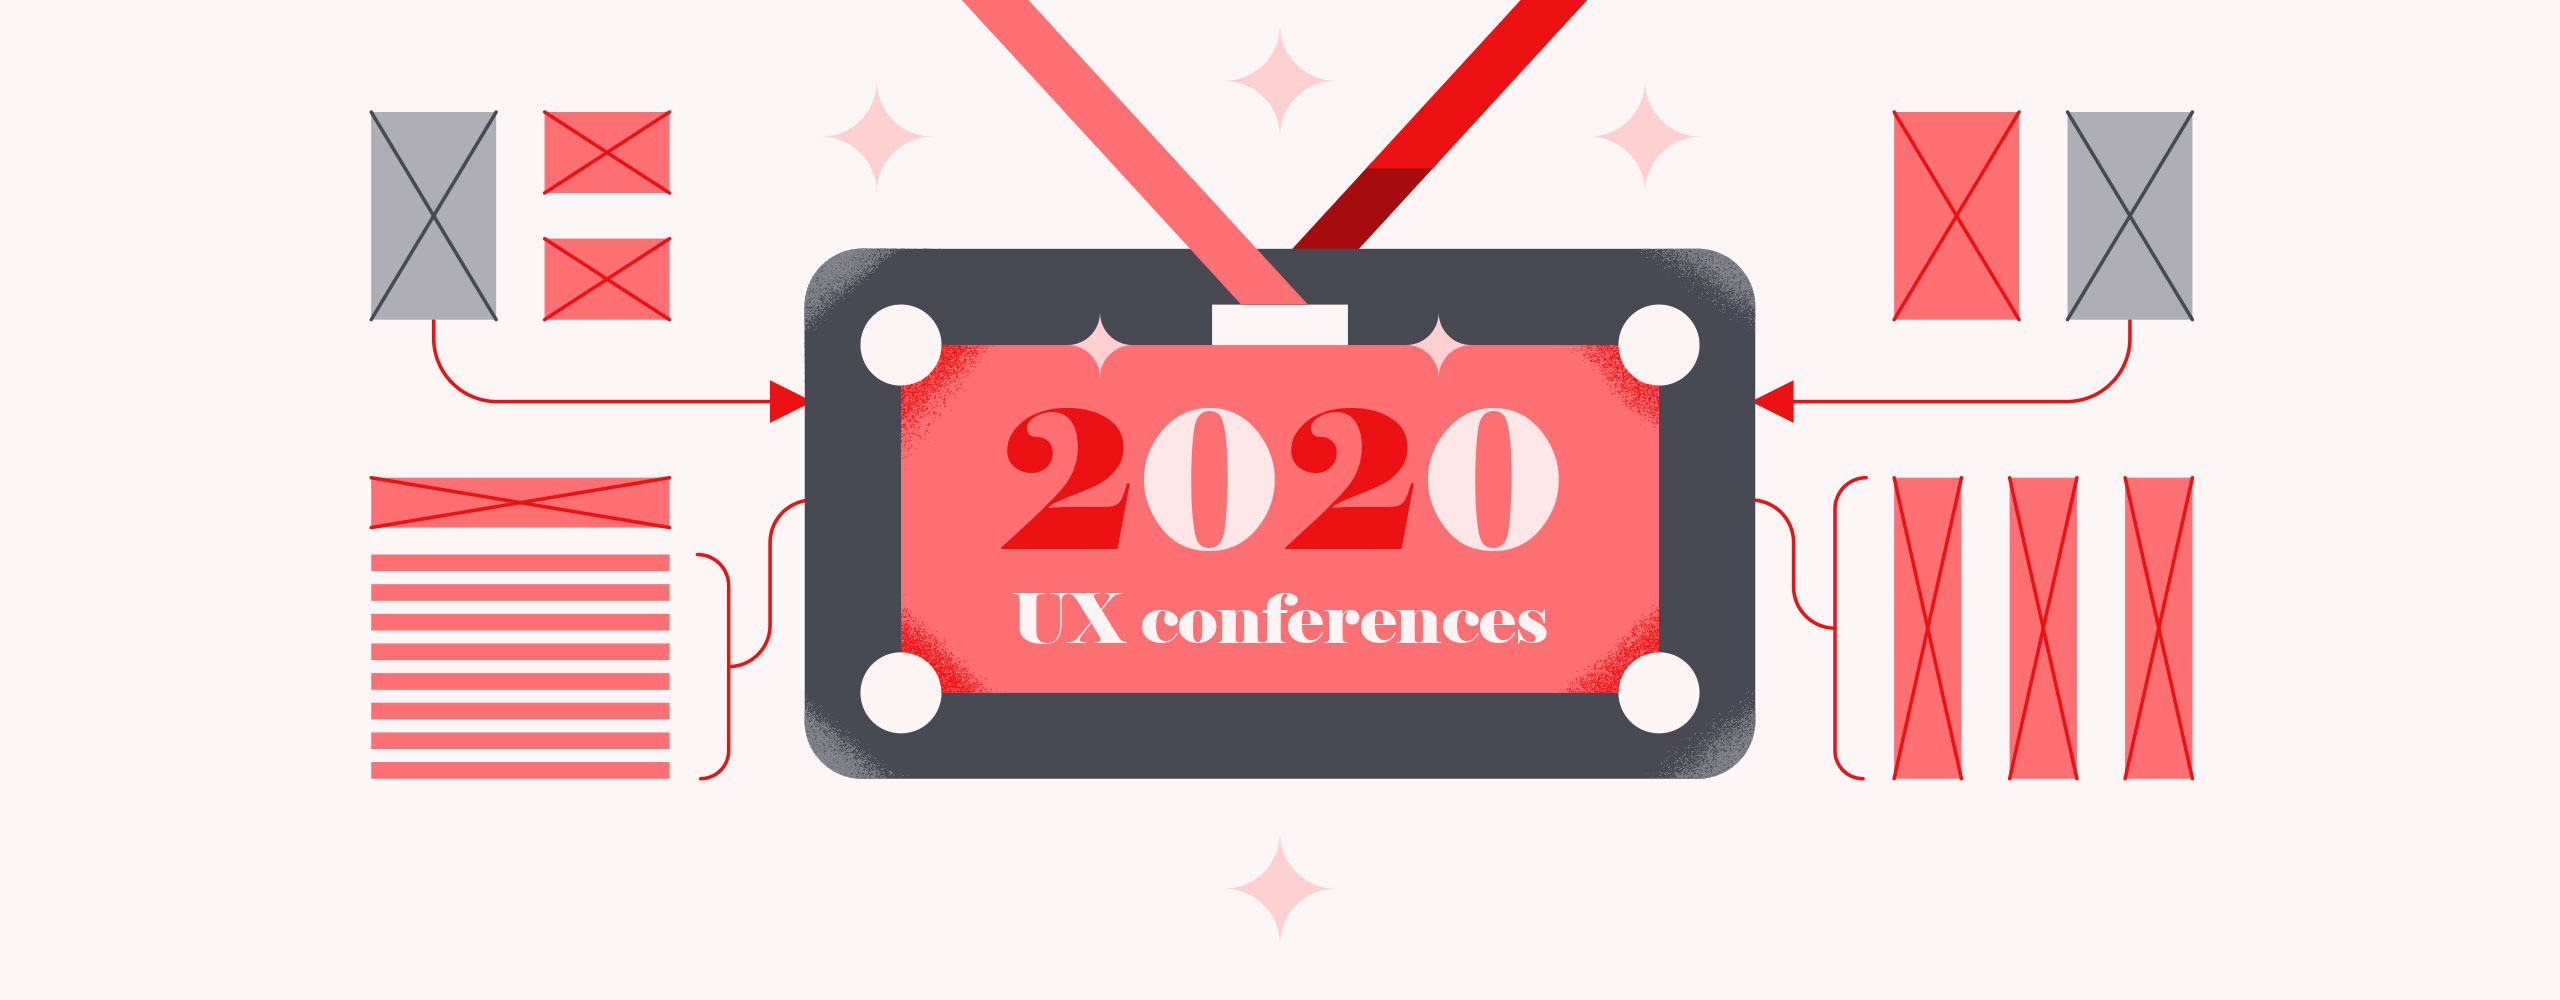 The most interesting UX conferences in 2020